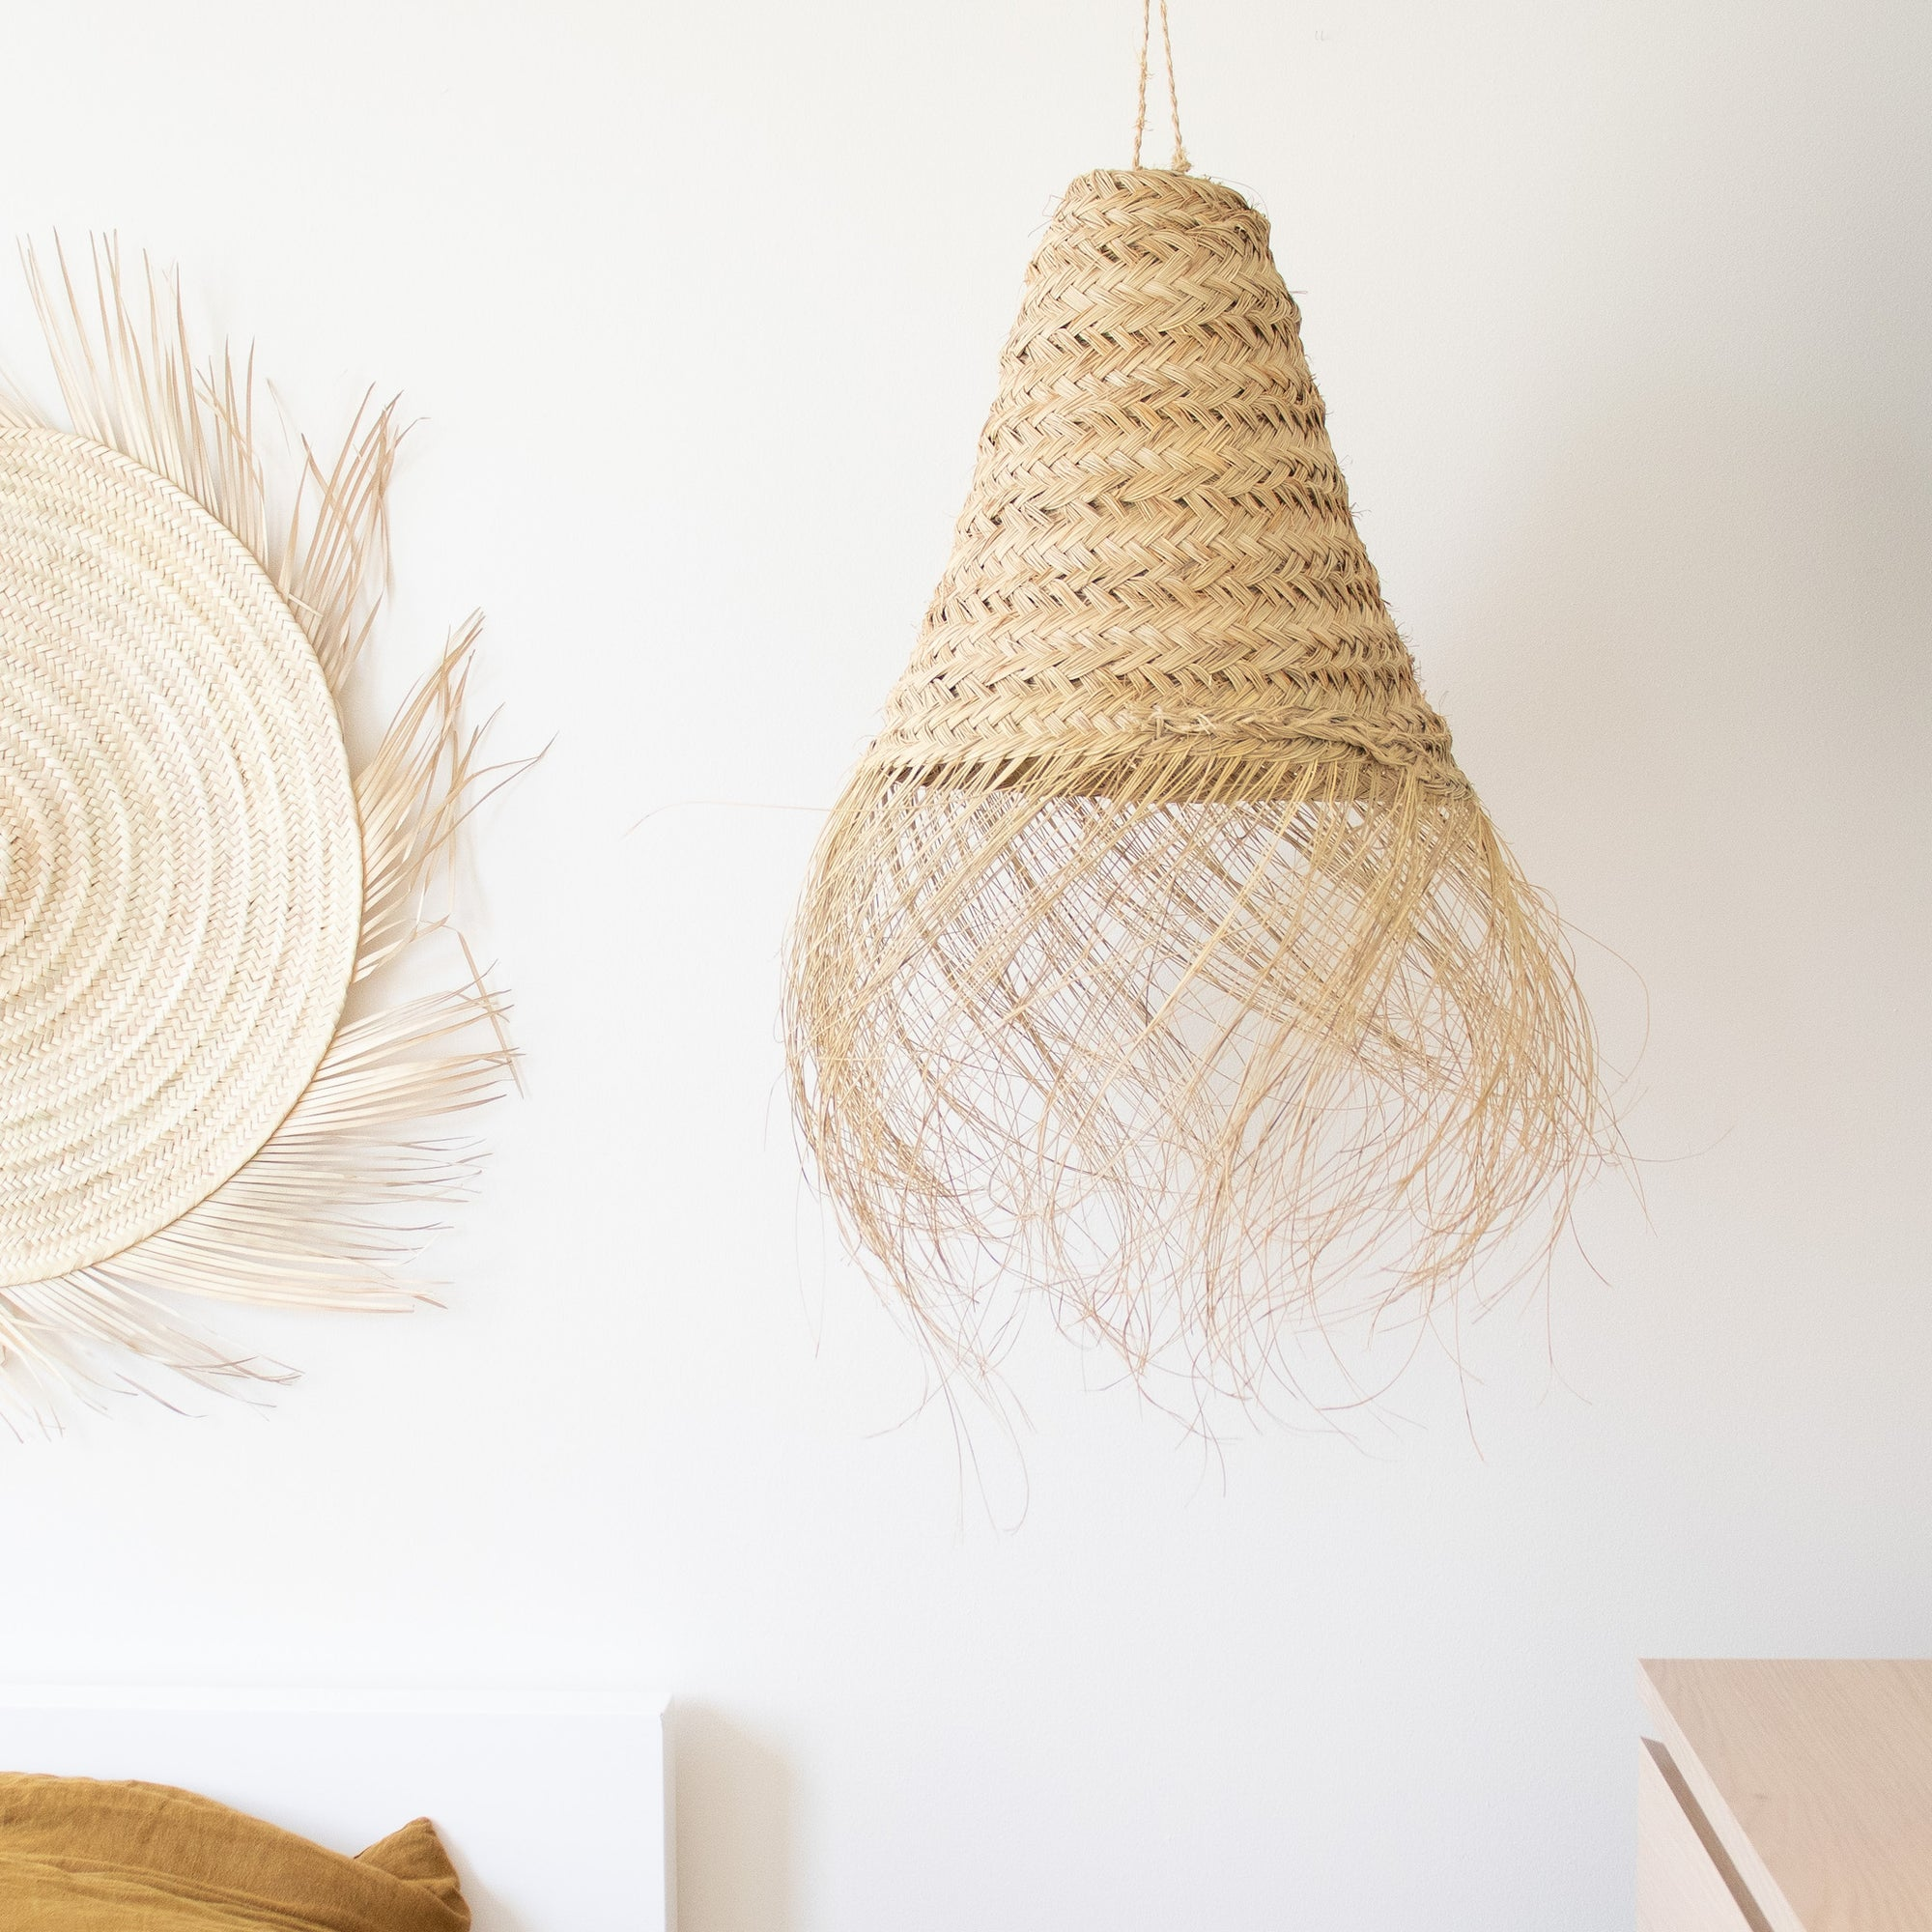 Hand woven straw light pedant